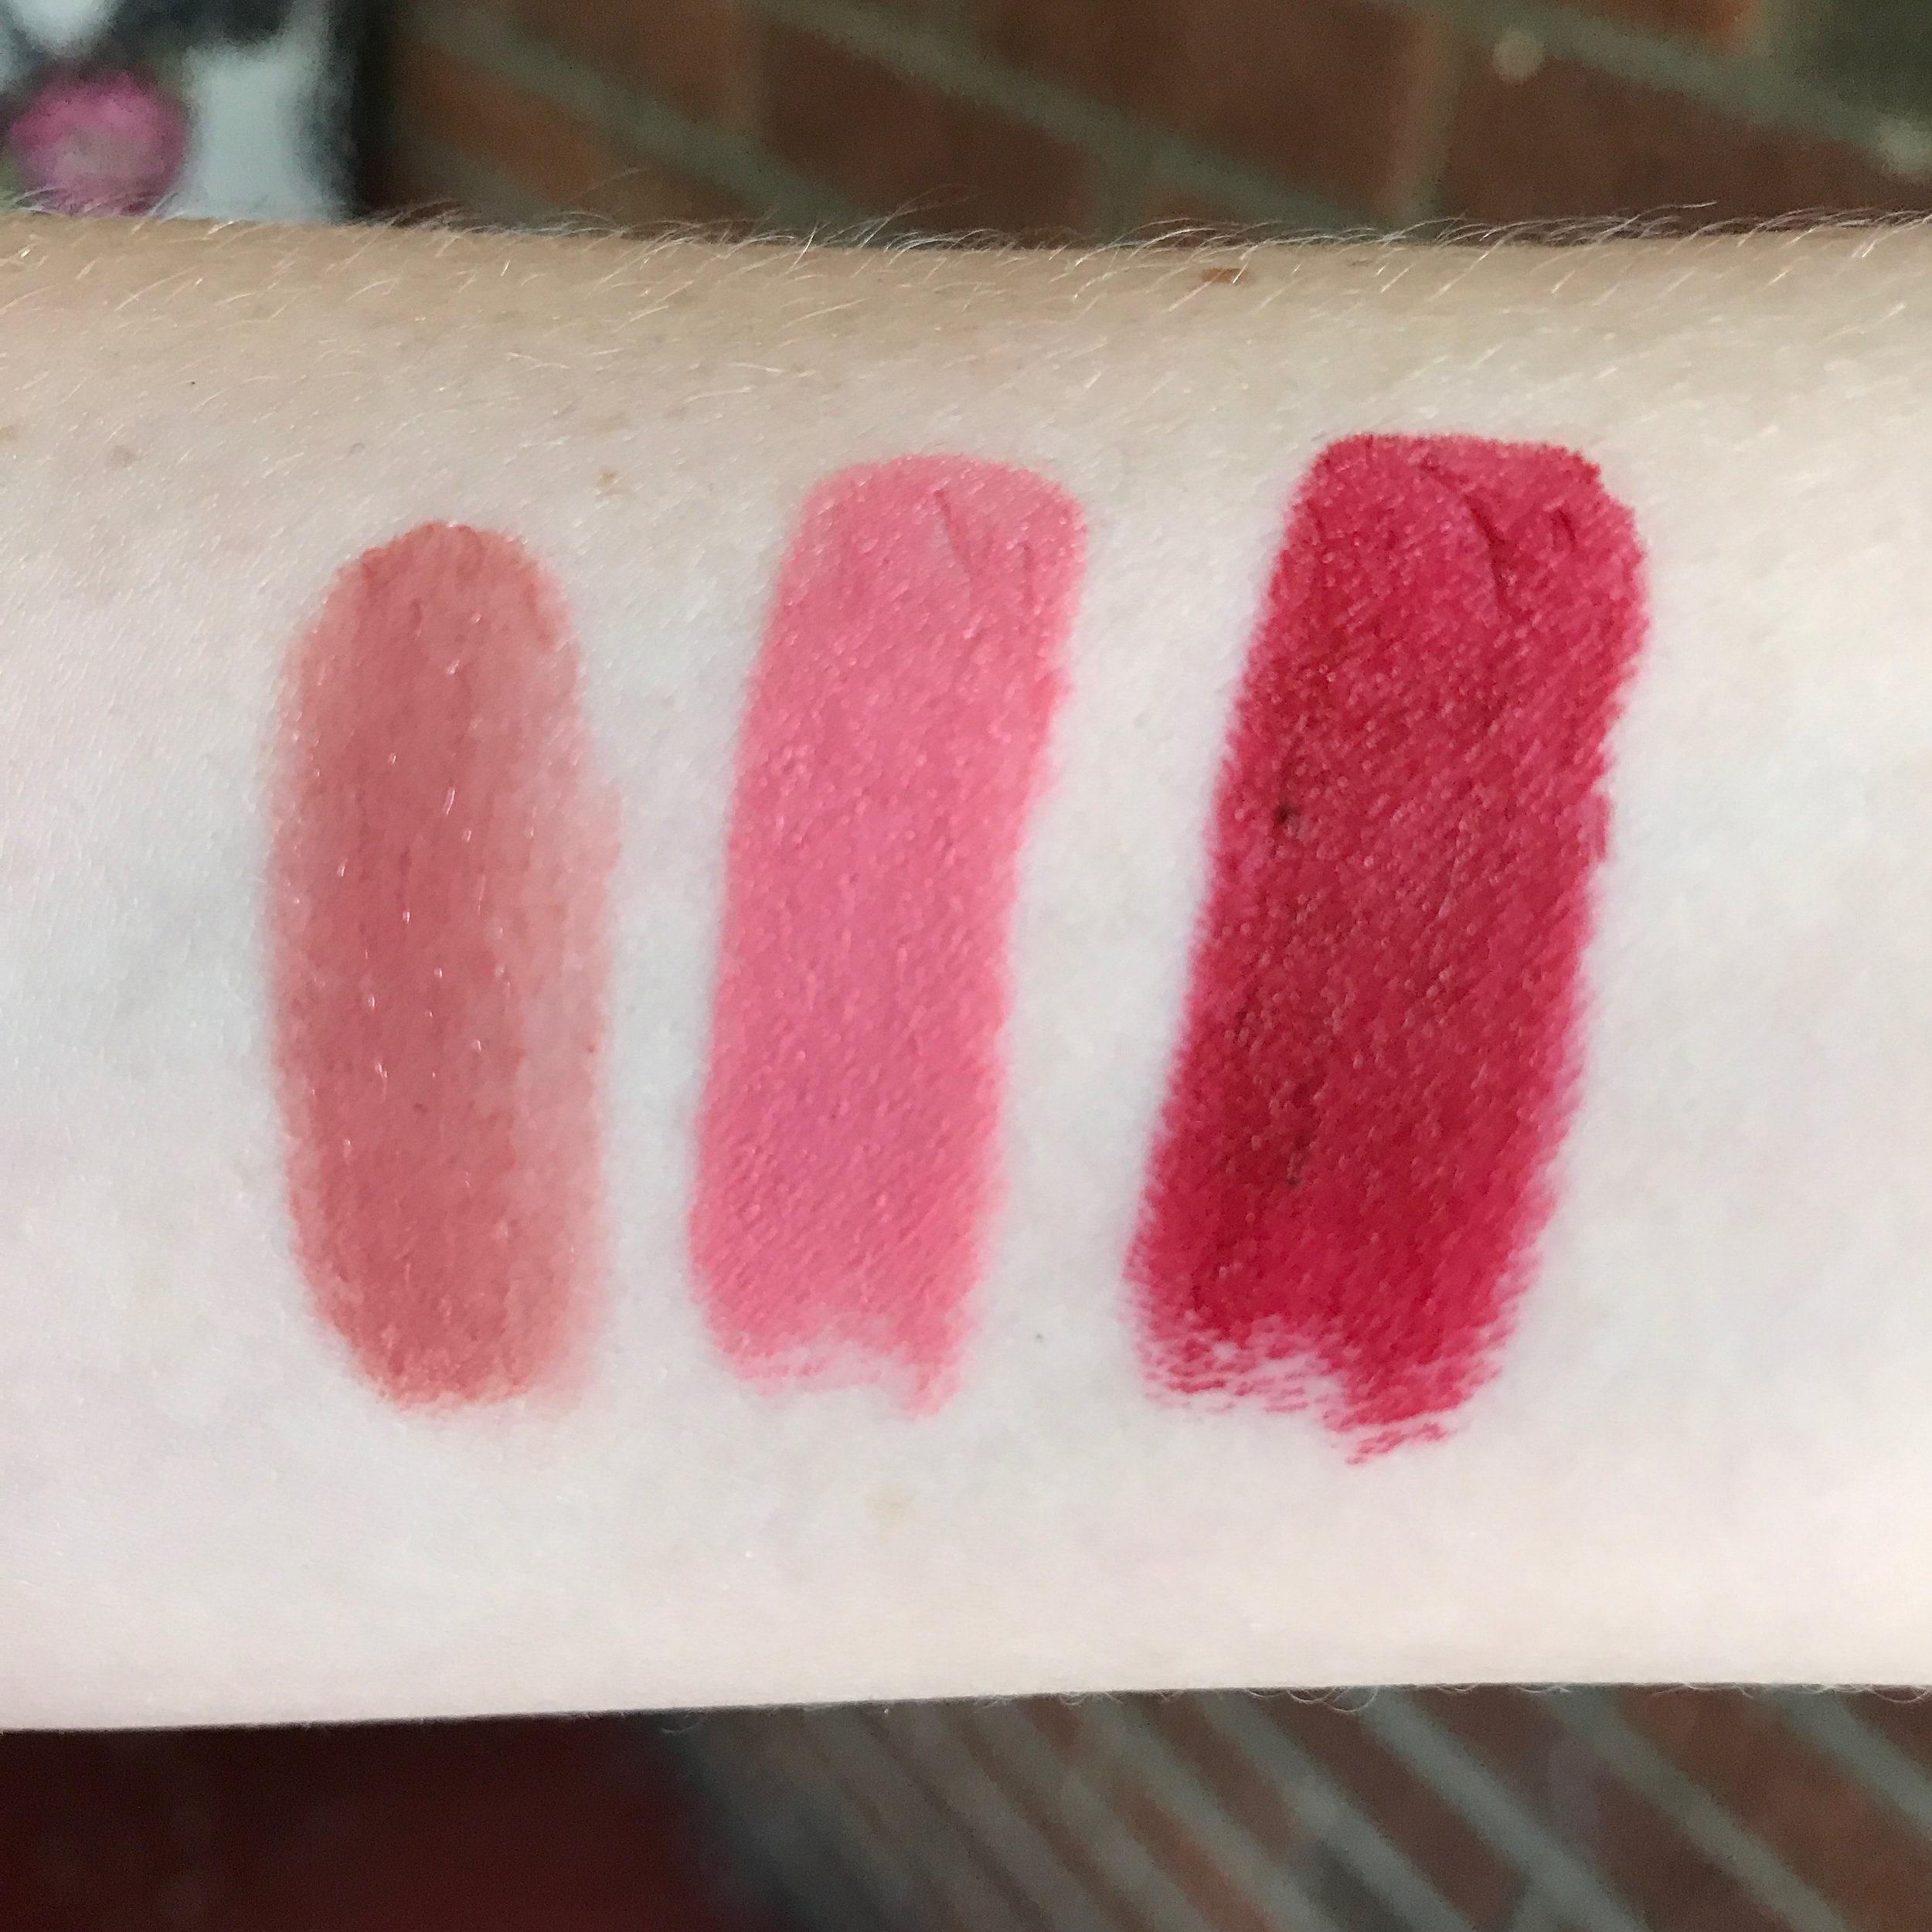 Swatches! From left to right: No.9; Portrait Pink and Red Velvet